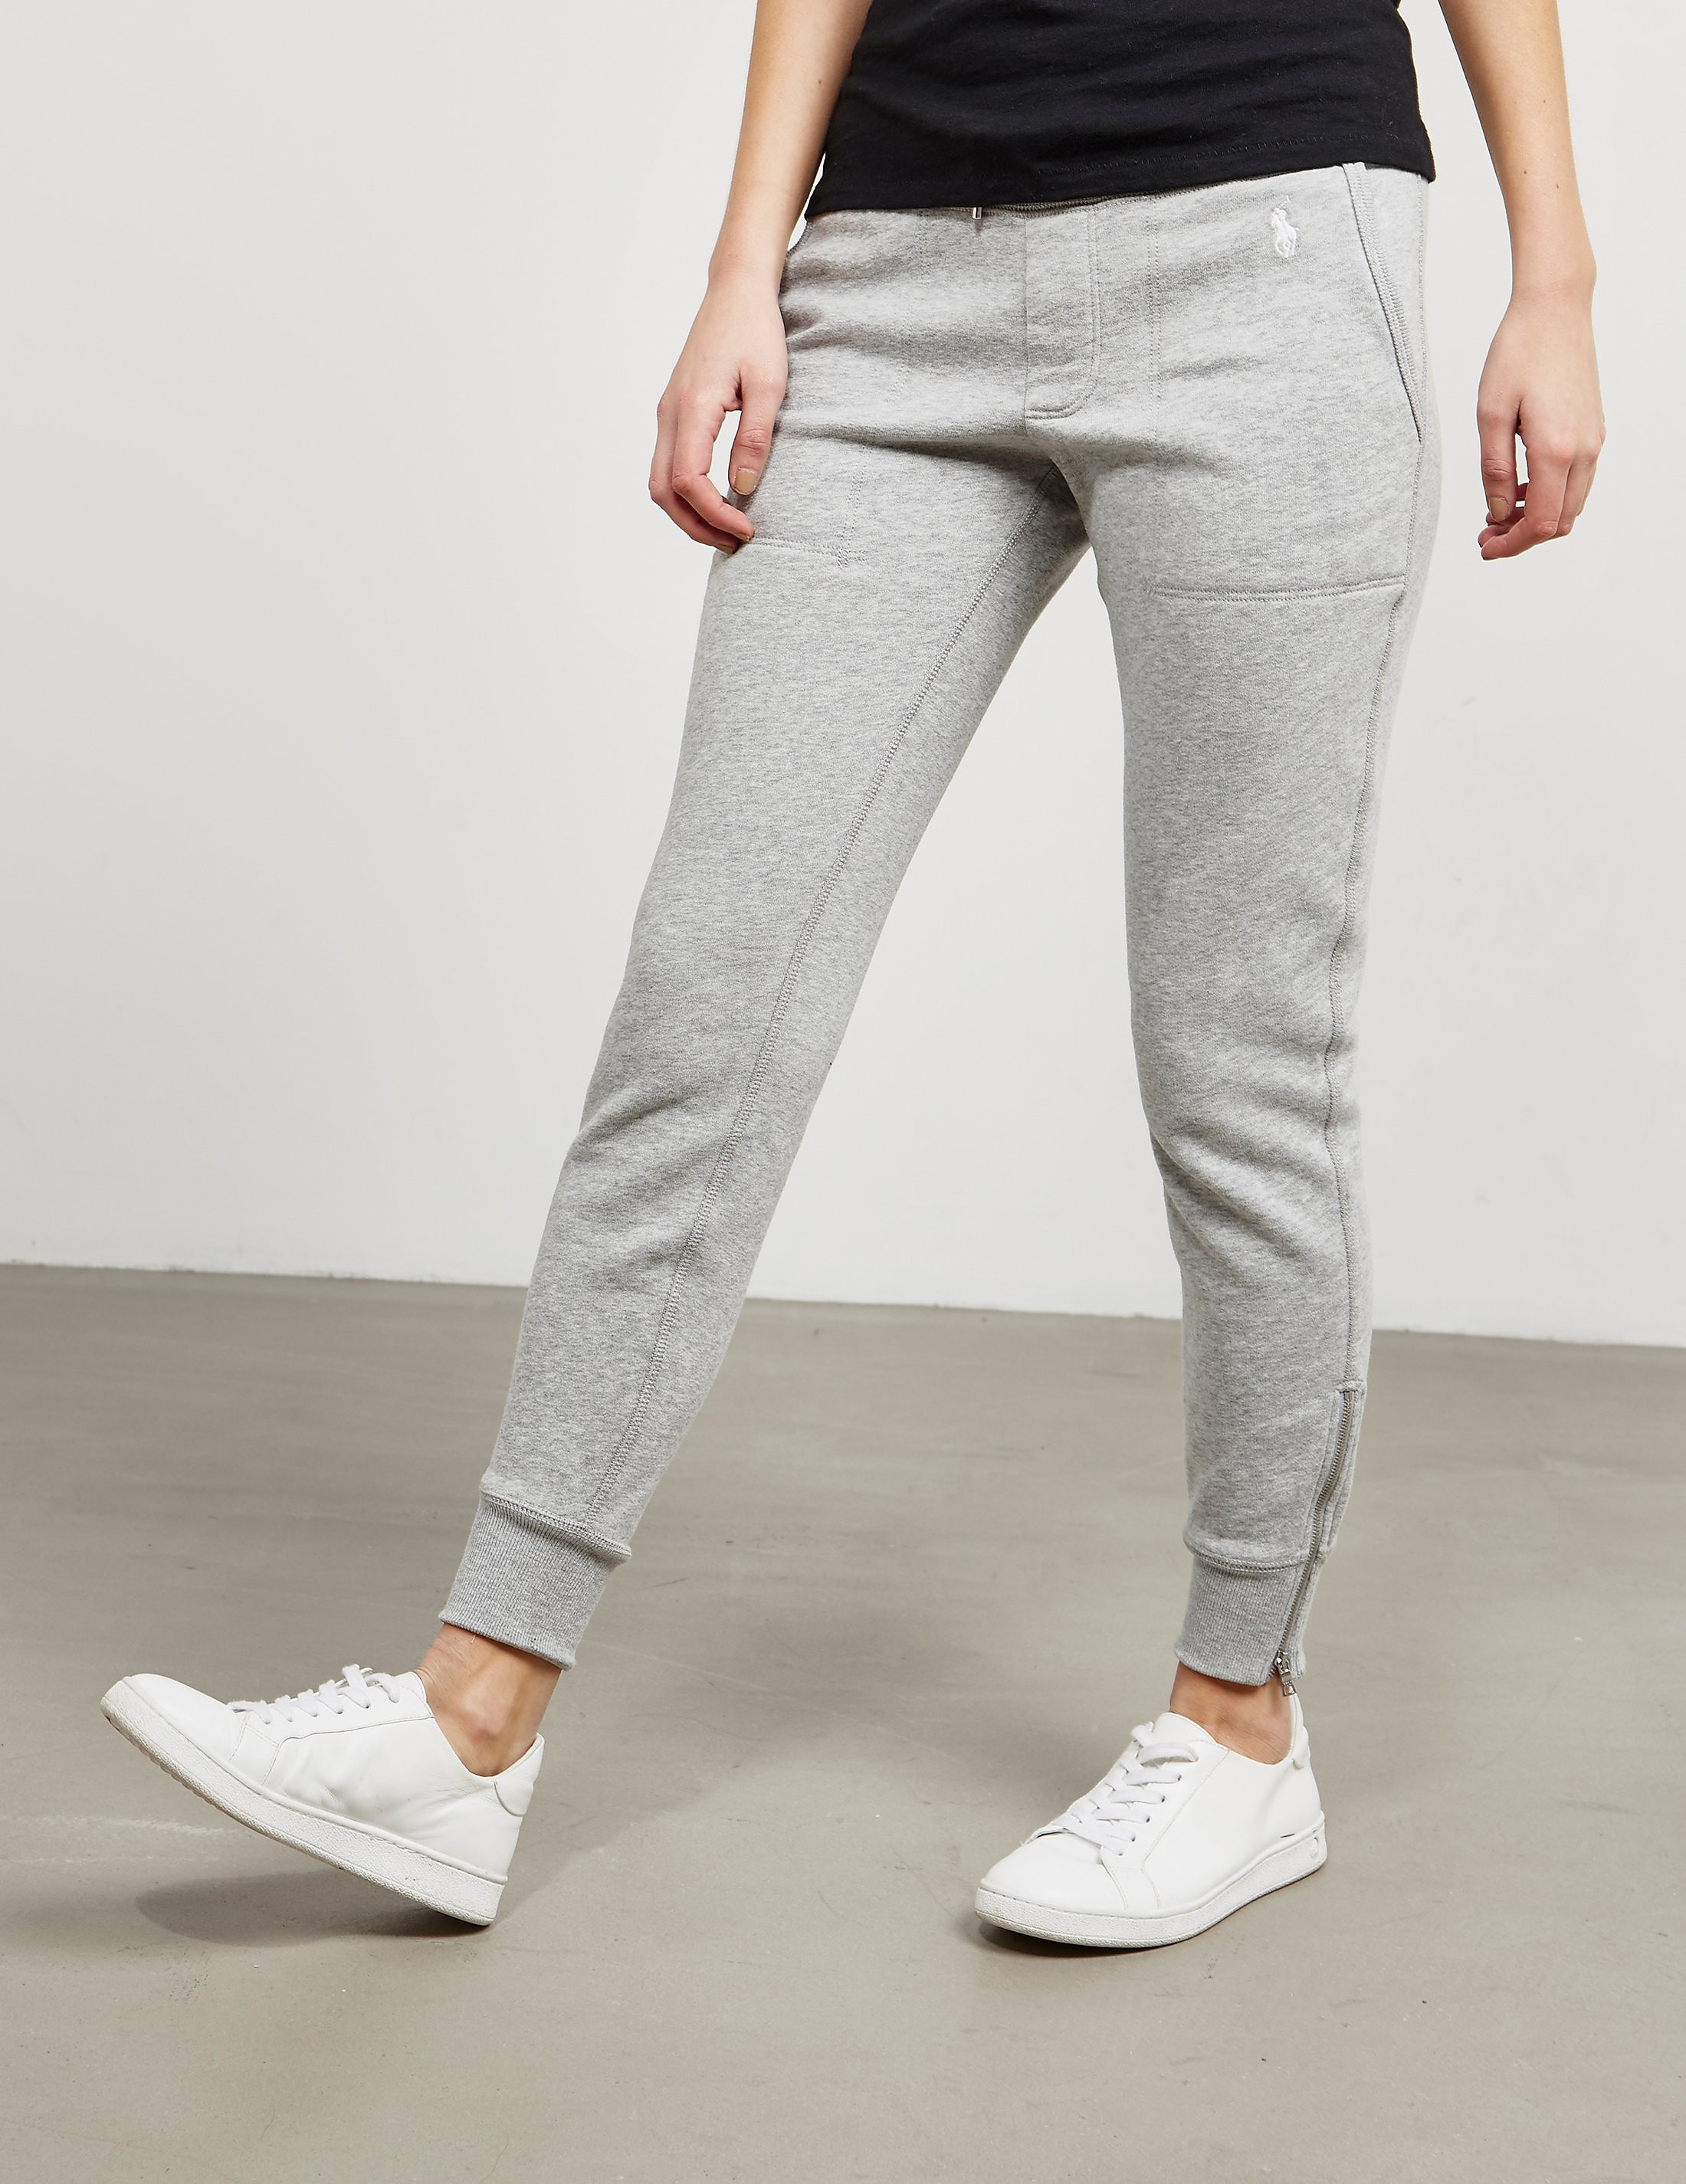 Polo Ralph Lauren Athletic Cuffed Joggers